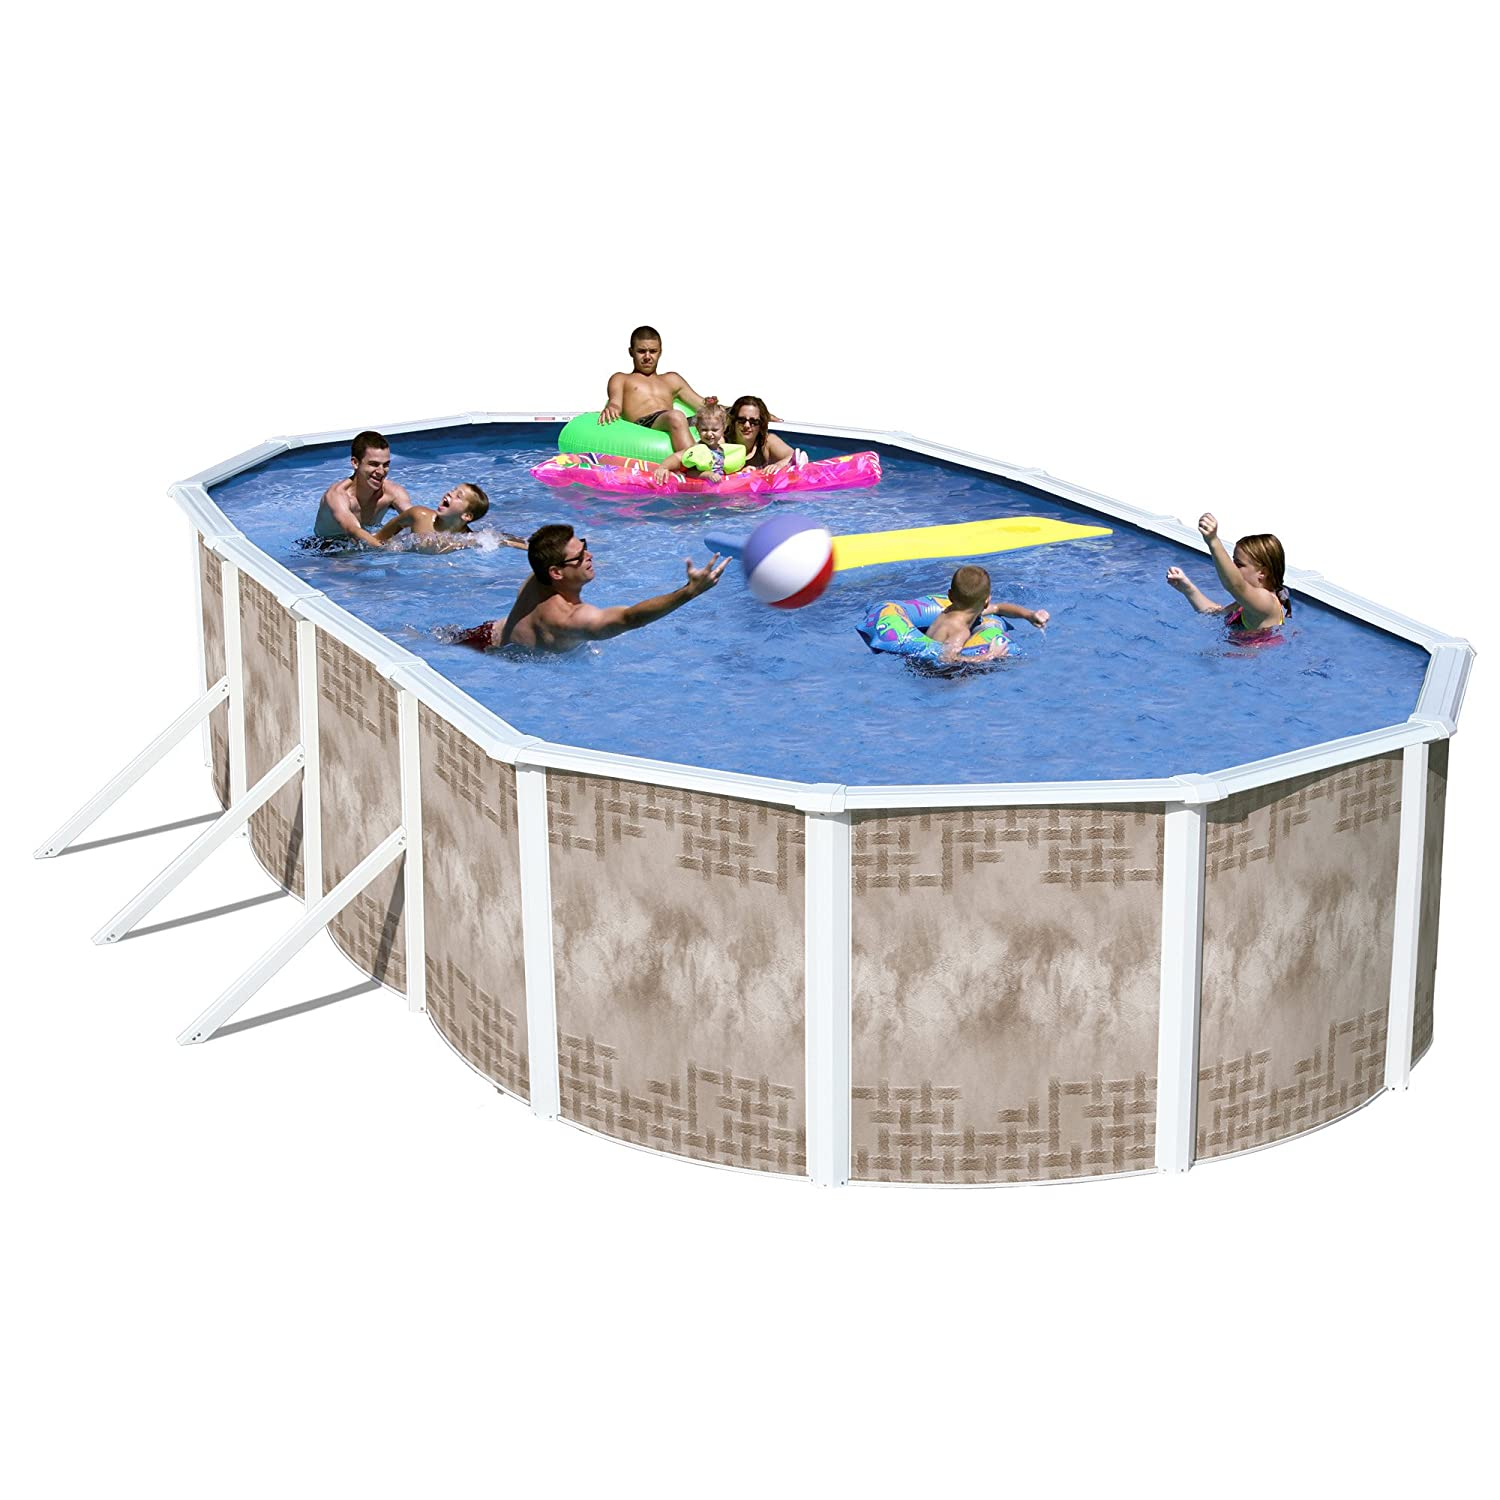 Best 5 Above Ground Pools To Buy In 2017 Best 5 Products